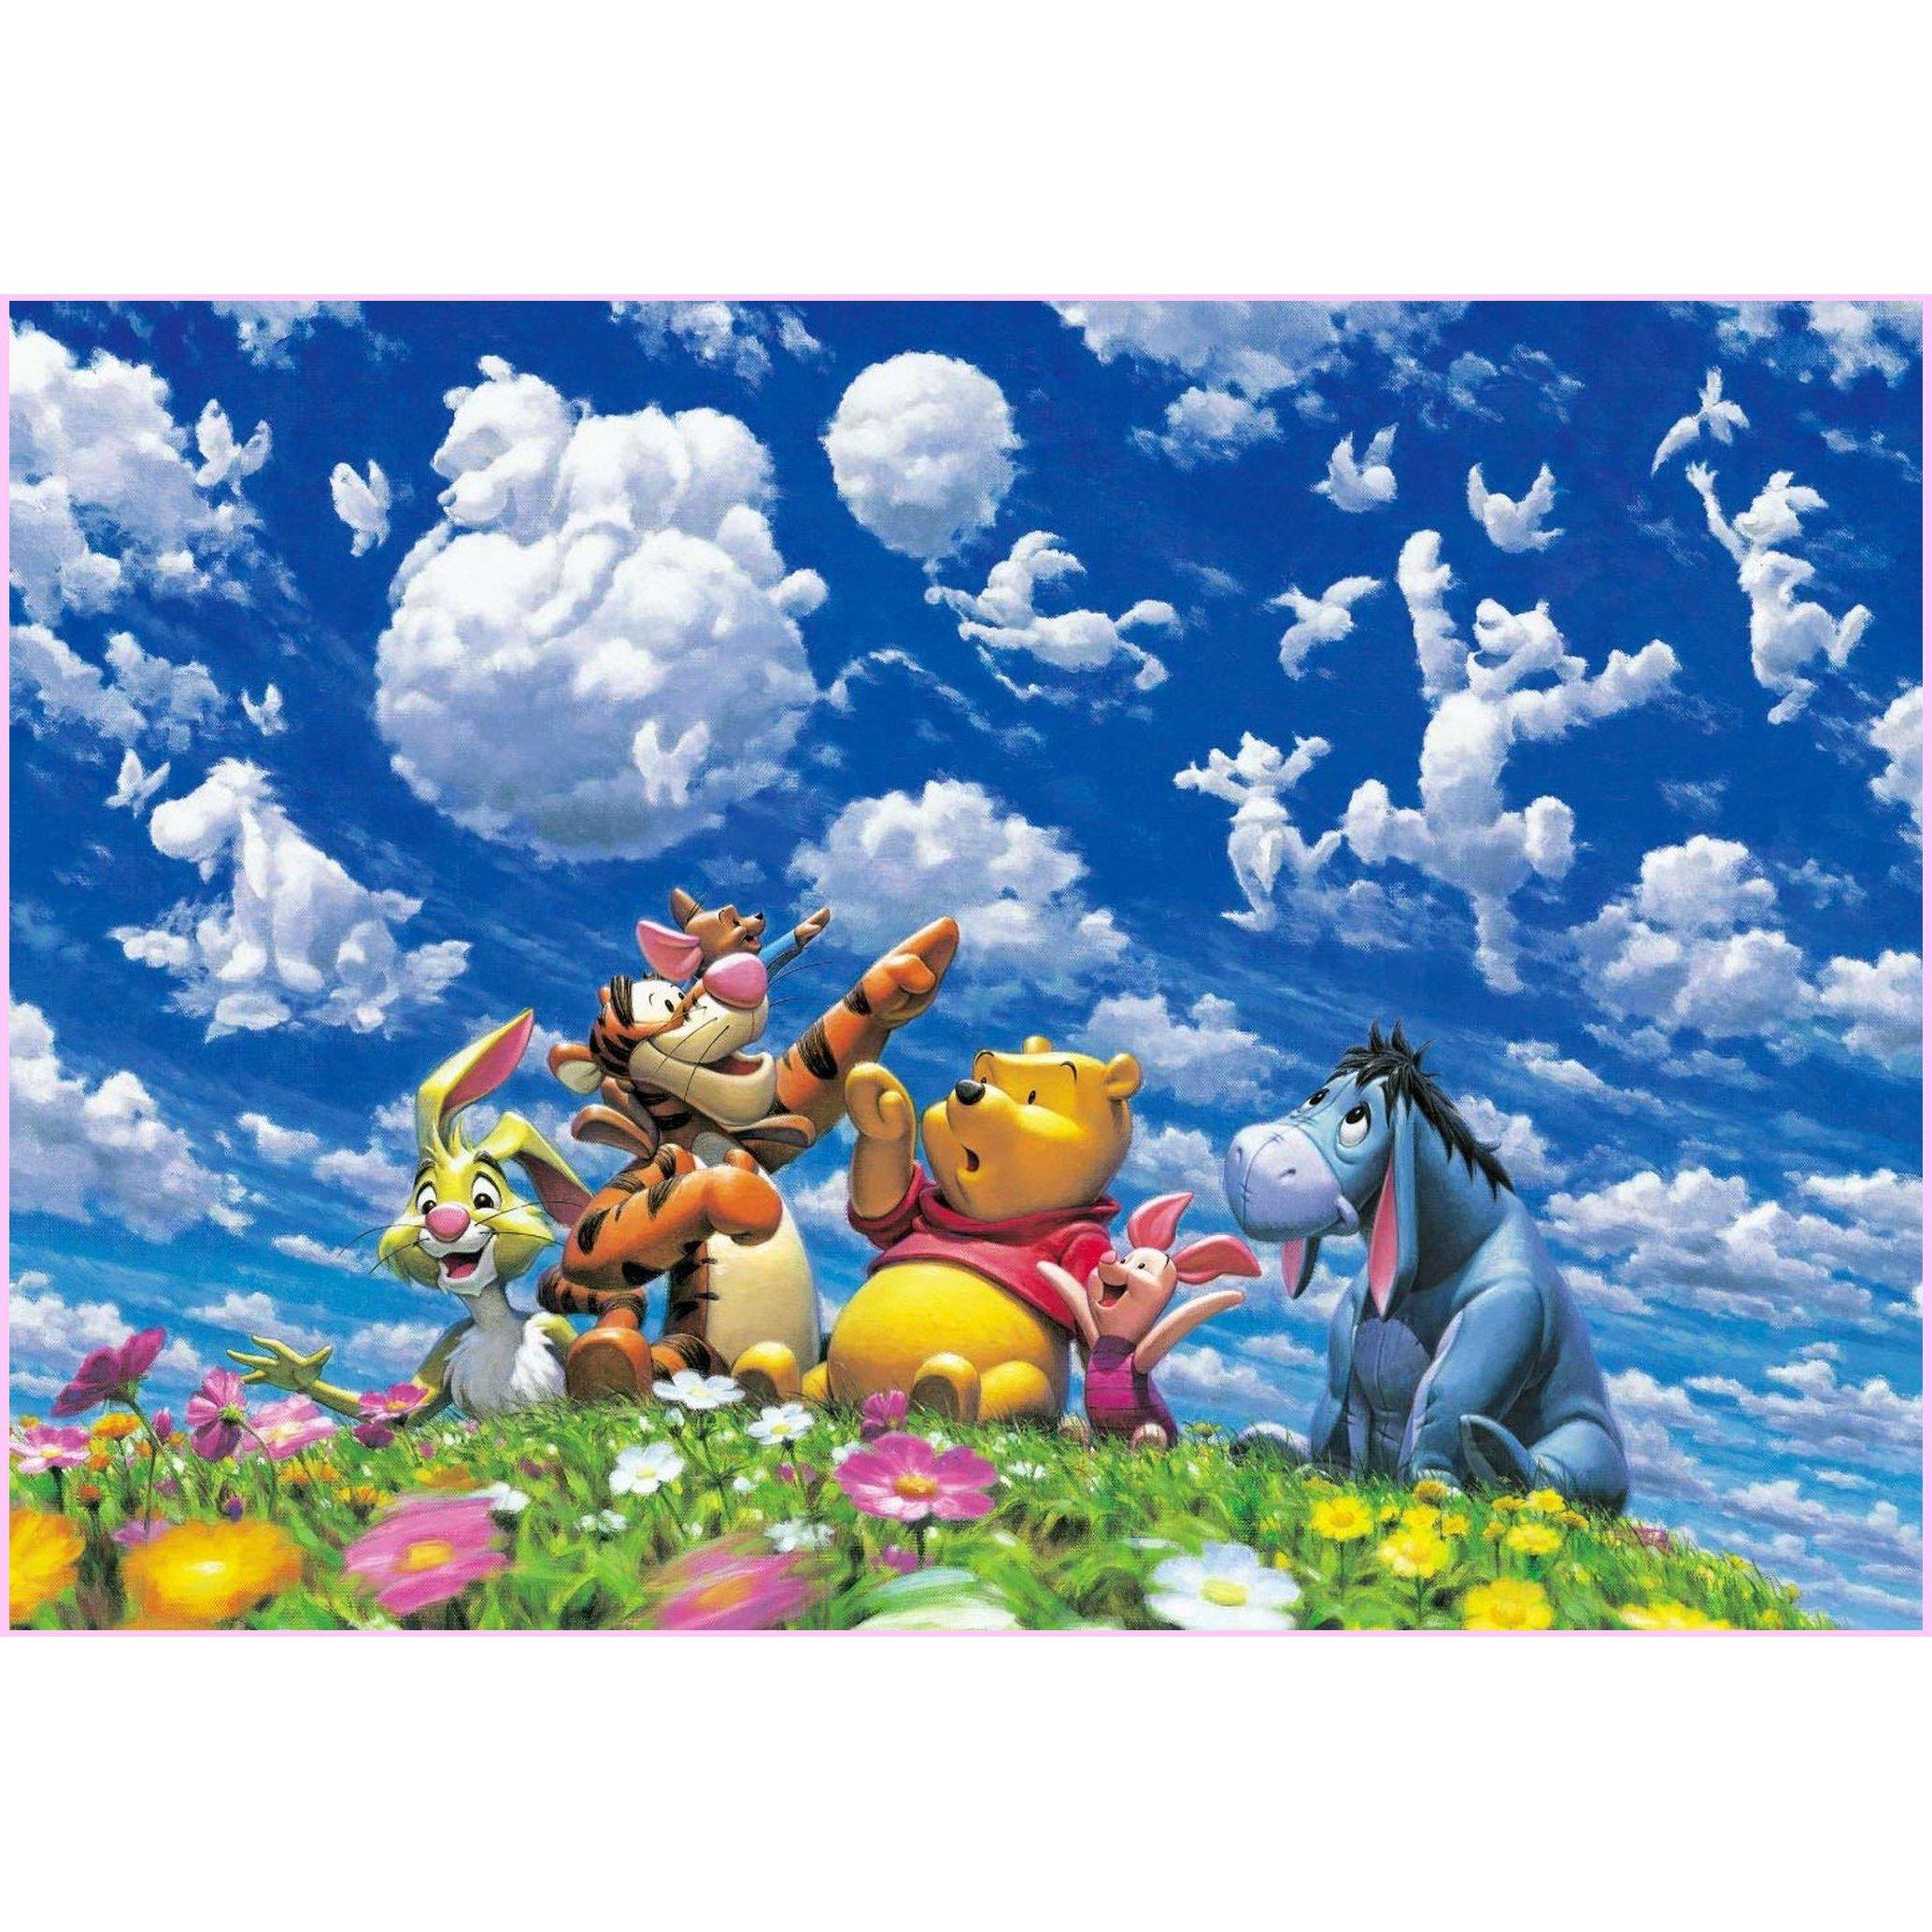 Friends for Life-Diamond Painting Kit USPS-30x40cm (12x16 in)-Square-Heartful Diamonds